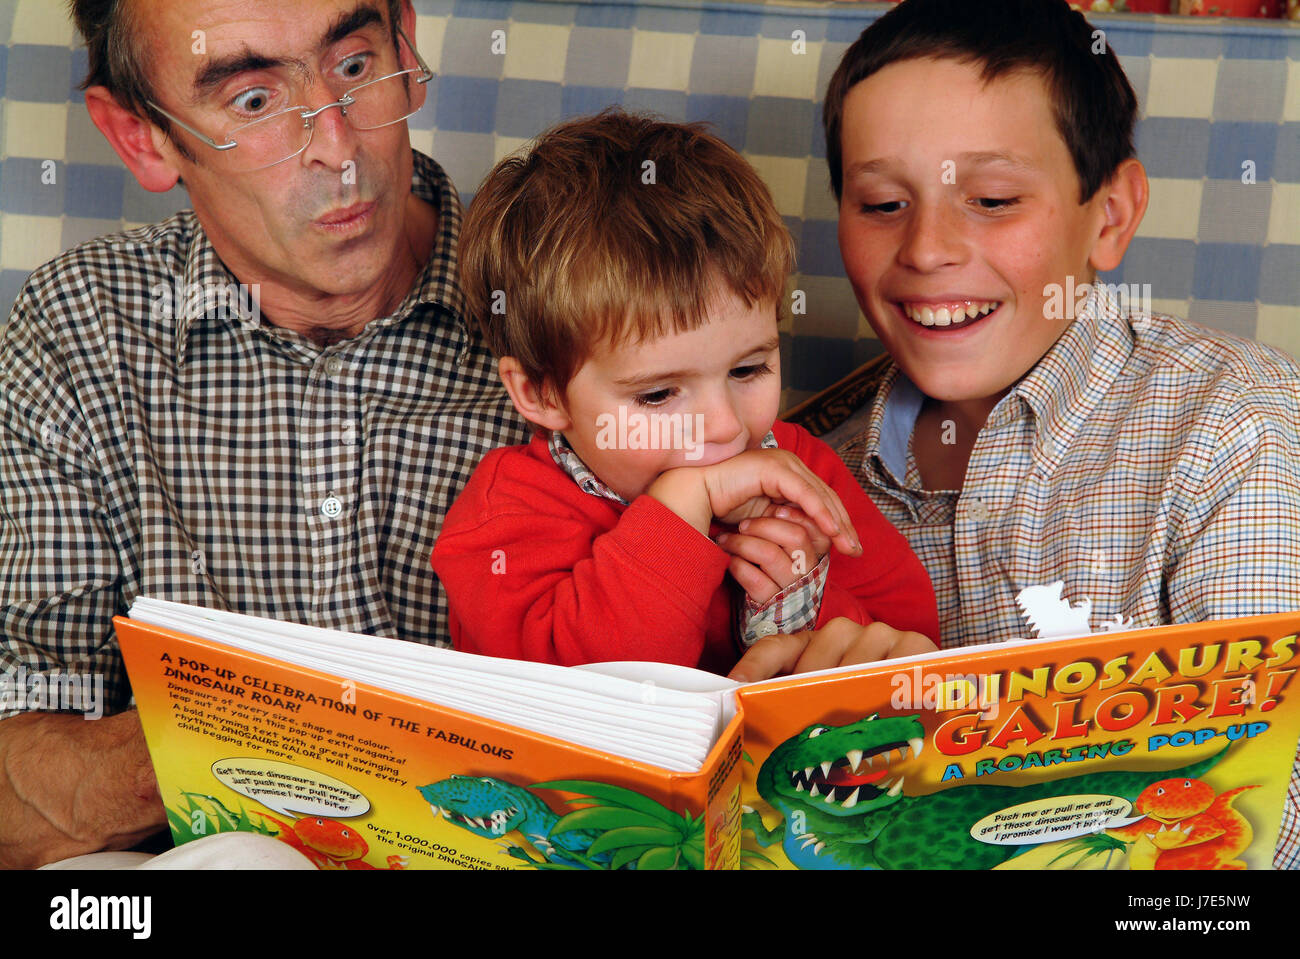 Arthur Read Stock Photos & Arthur Read Stock Images - Alamy